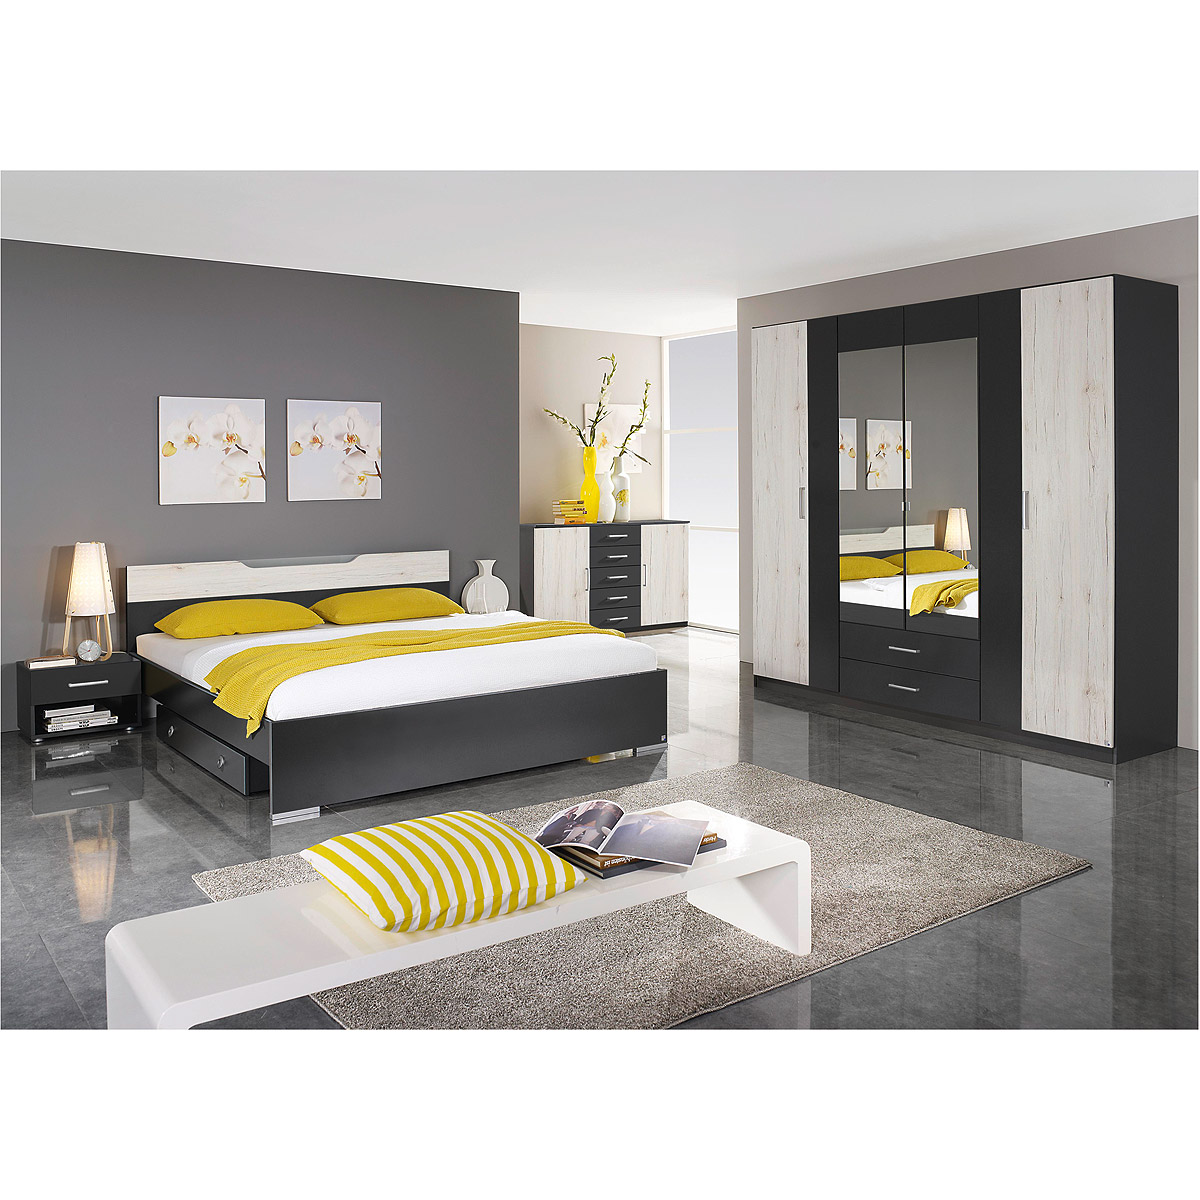 schlafzimmer set cartagena bett nako schrank grau metallic. Black Bedroom Furniture Sets. Home Design Ideas